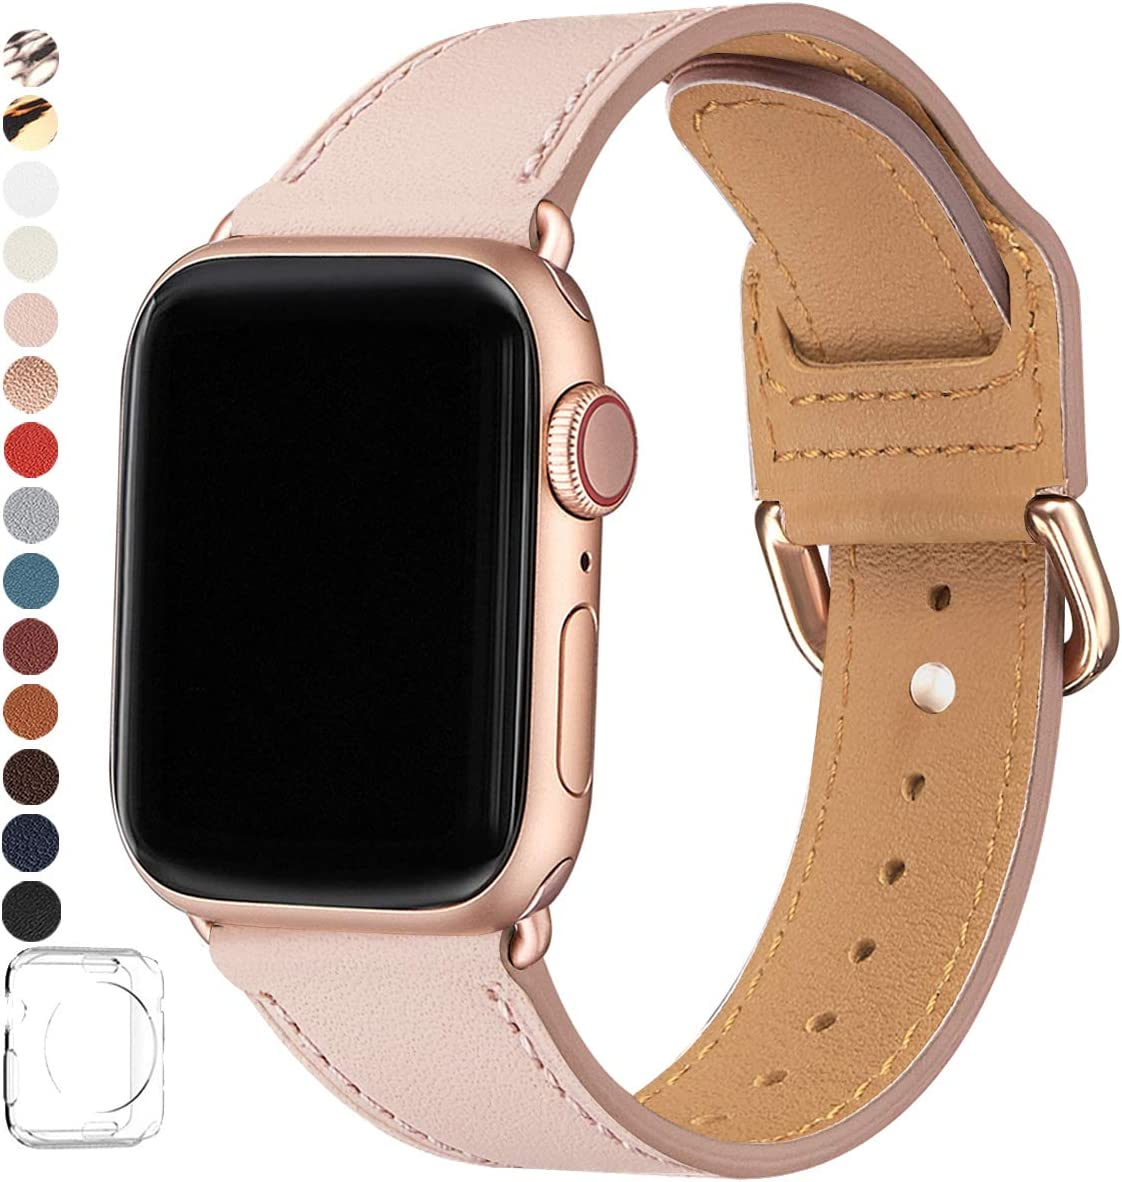 POWER PRIMACY Bands Compatible with Apple Watch Band 38mm 40mm 42mm 44mm, Top Grain Leather Smart Watch Strap Compatible for Men Women iWatch Series 6 5 4 3 2 1,SE(Pink Sand /Rosegold, 42mm 44mm)